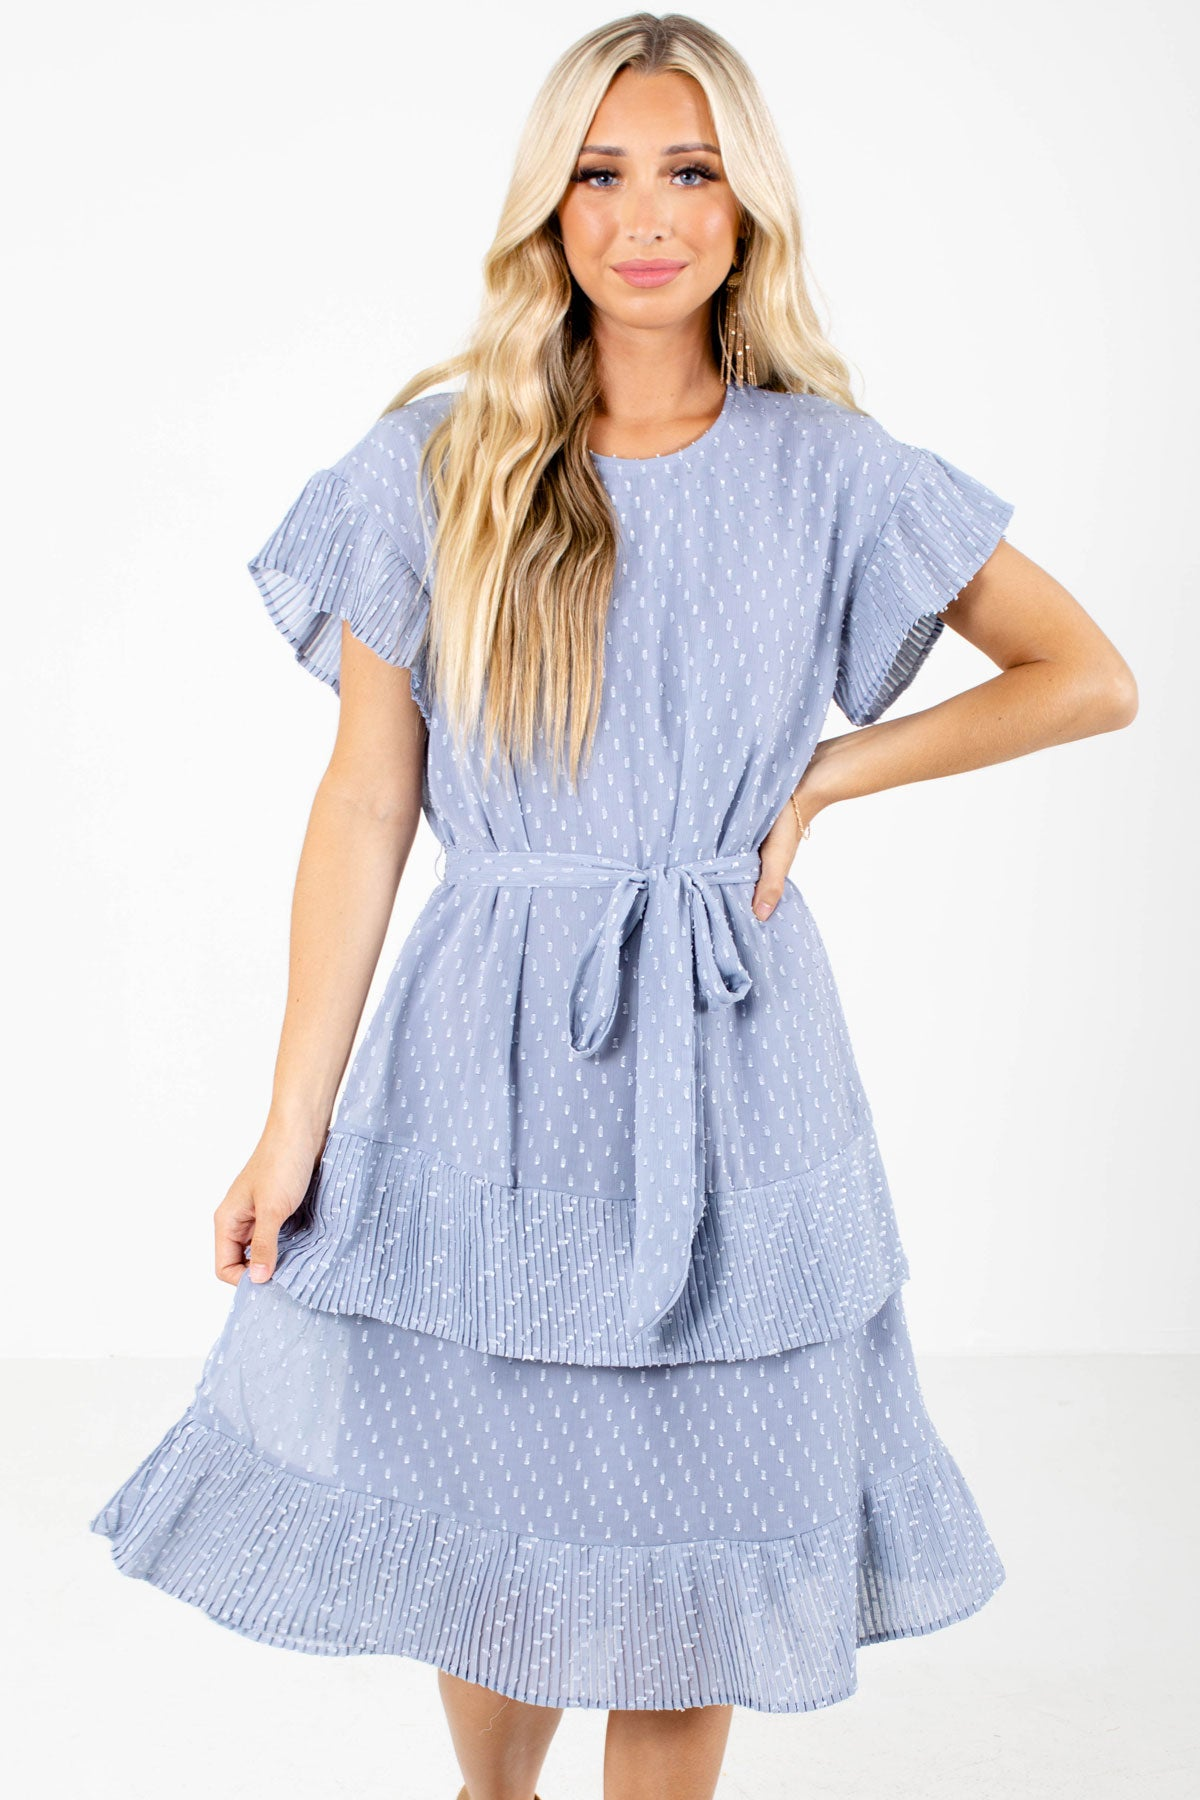 Blue Textured Material Boutique Knee-Length Dresses for Women